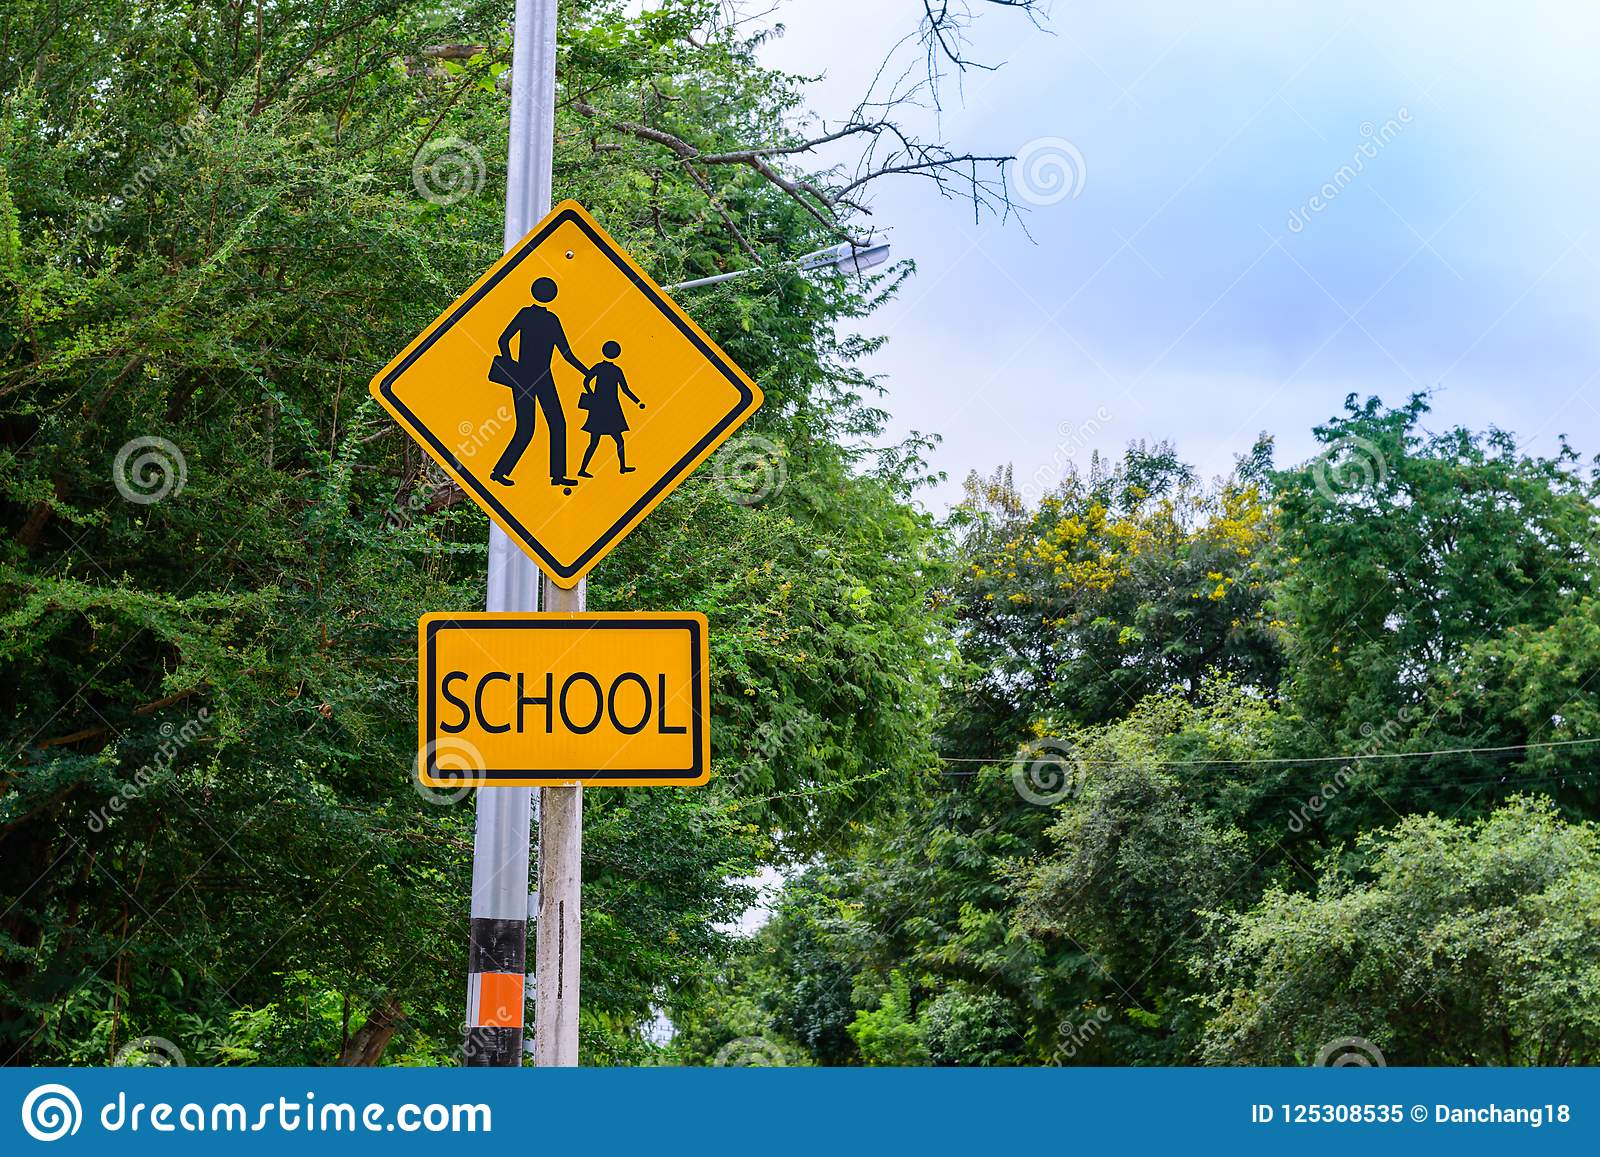 Warning Sign For Students School Crossing The Street Stock